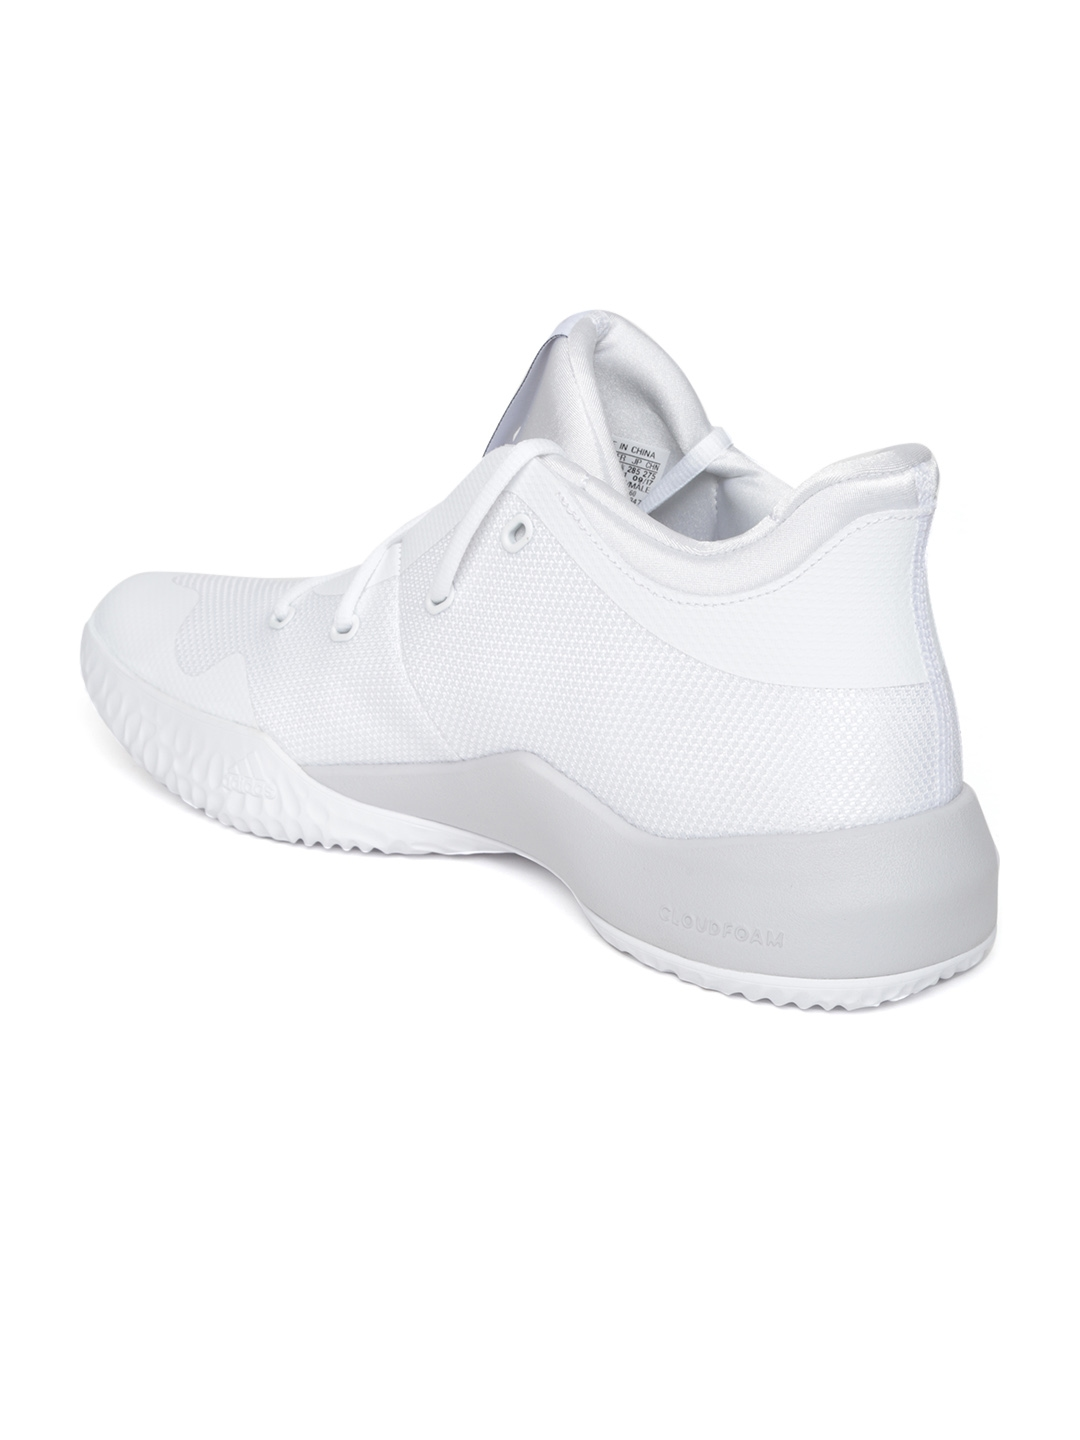 Buy ADIDAS Men White Rise Up 2 Basketball Shoes - Sports Shoes for ... 823c82368